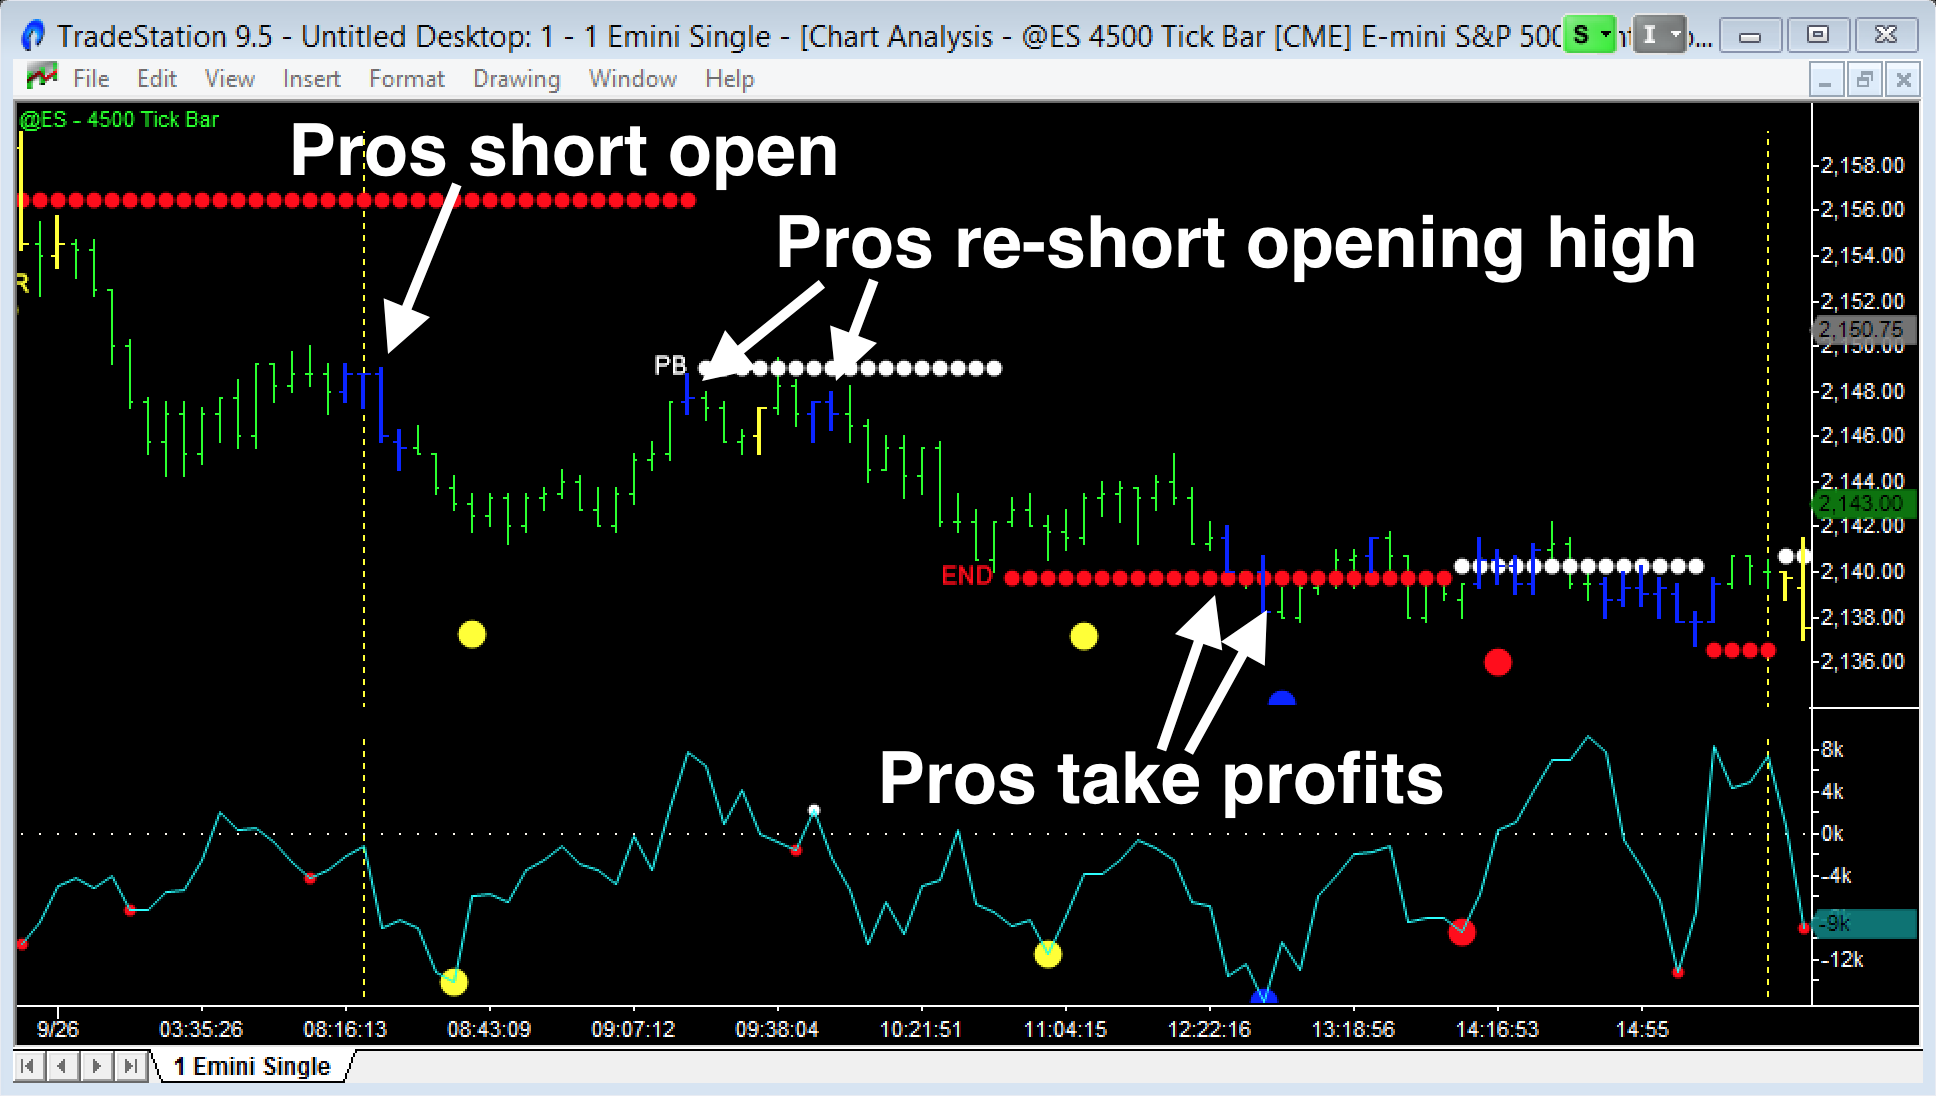 image of emini day trading professional traders